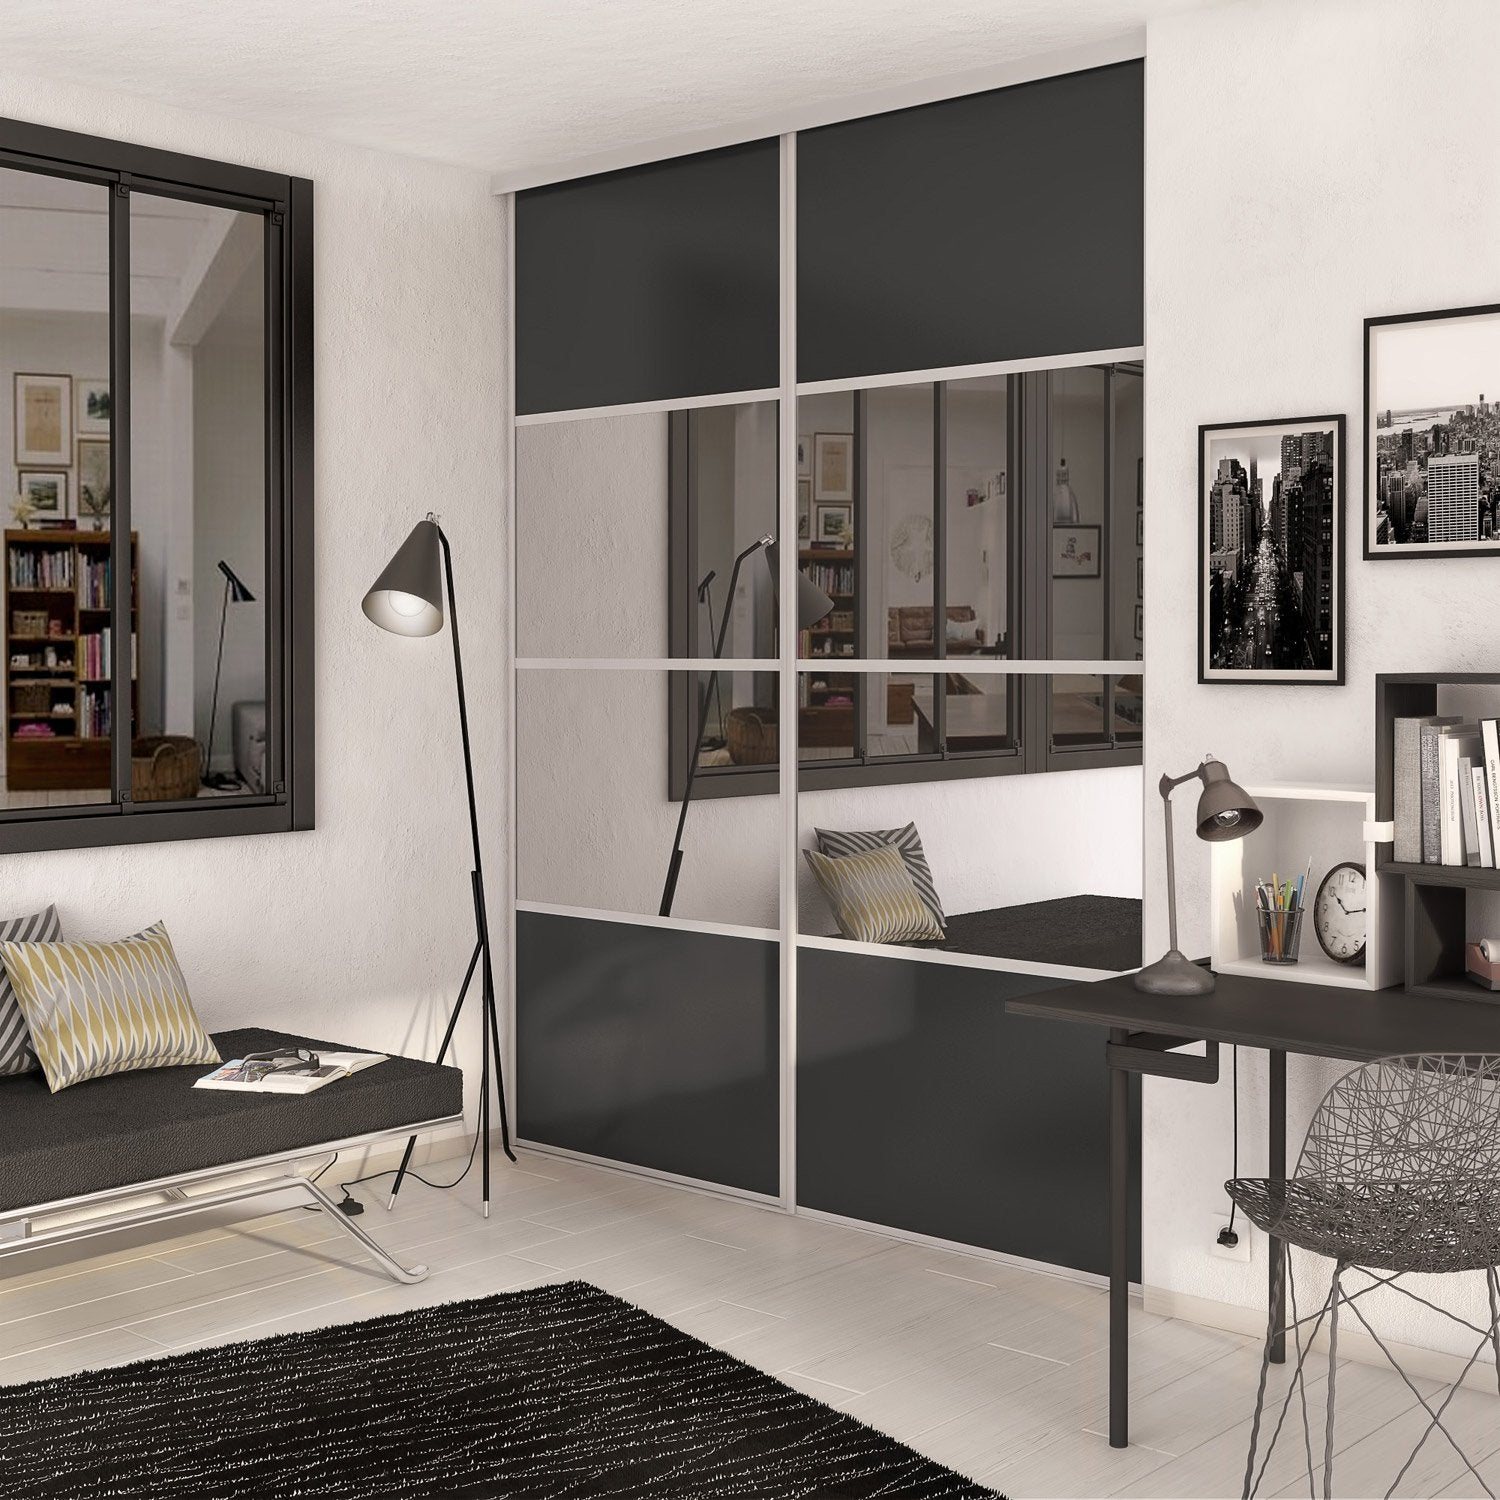 porte de placard coulissante gris graphite miroir argent spaceo 250x98cm leroy merlin. Black Bedroom Furniture Sets. Home Design Ideas